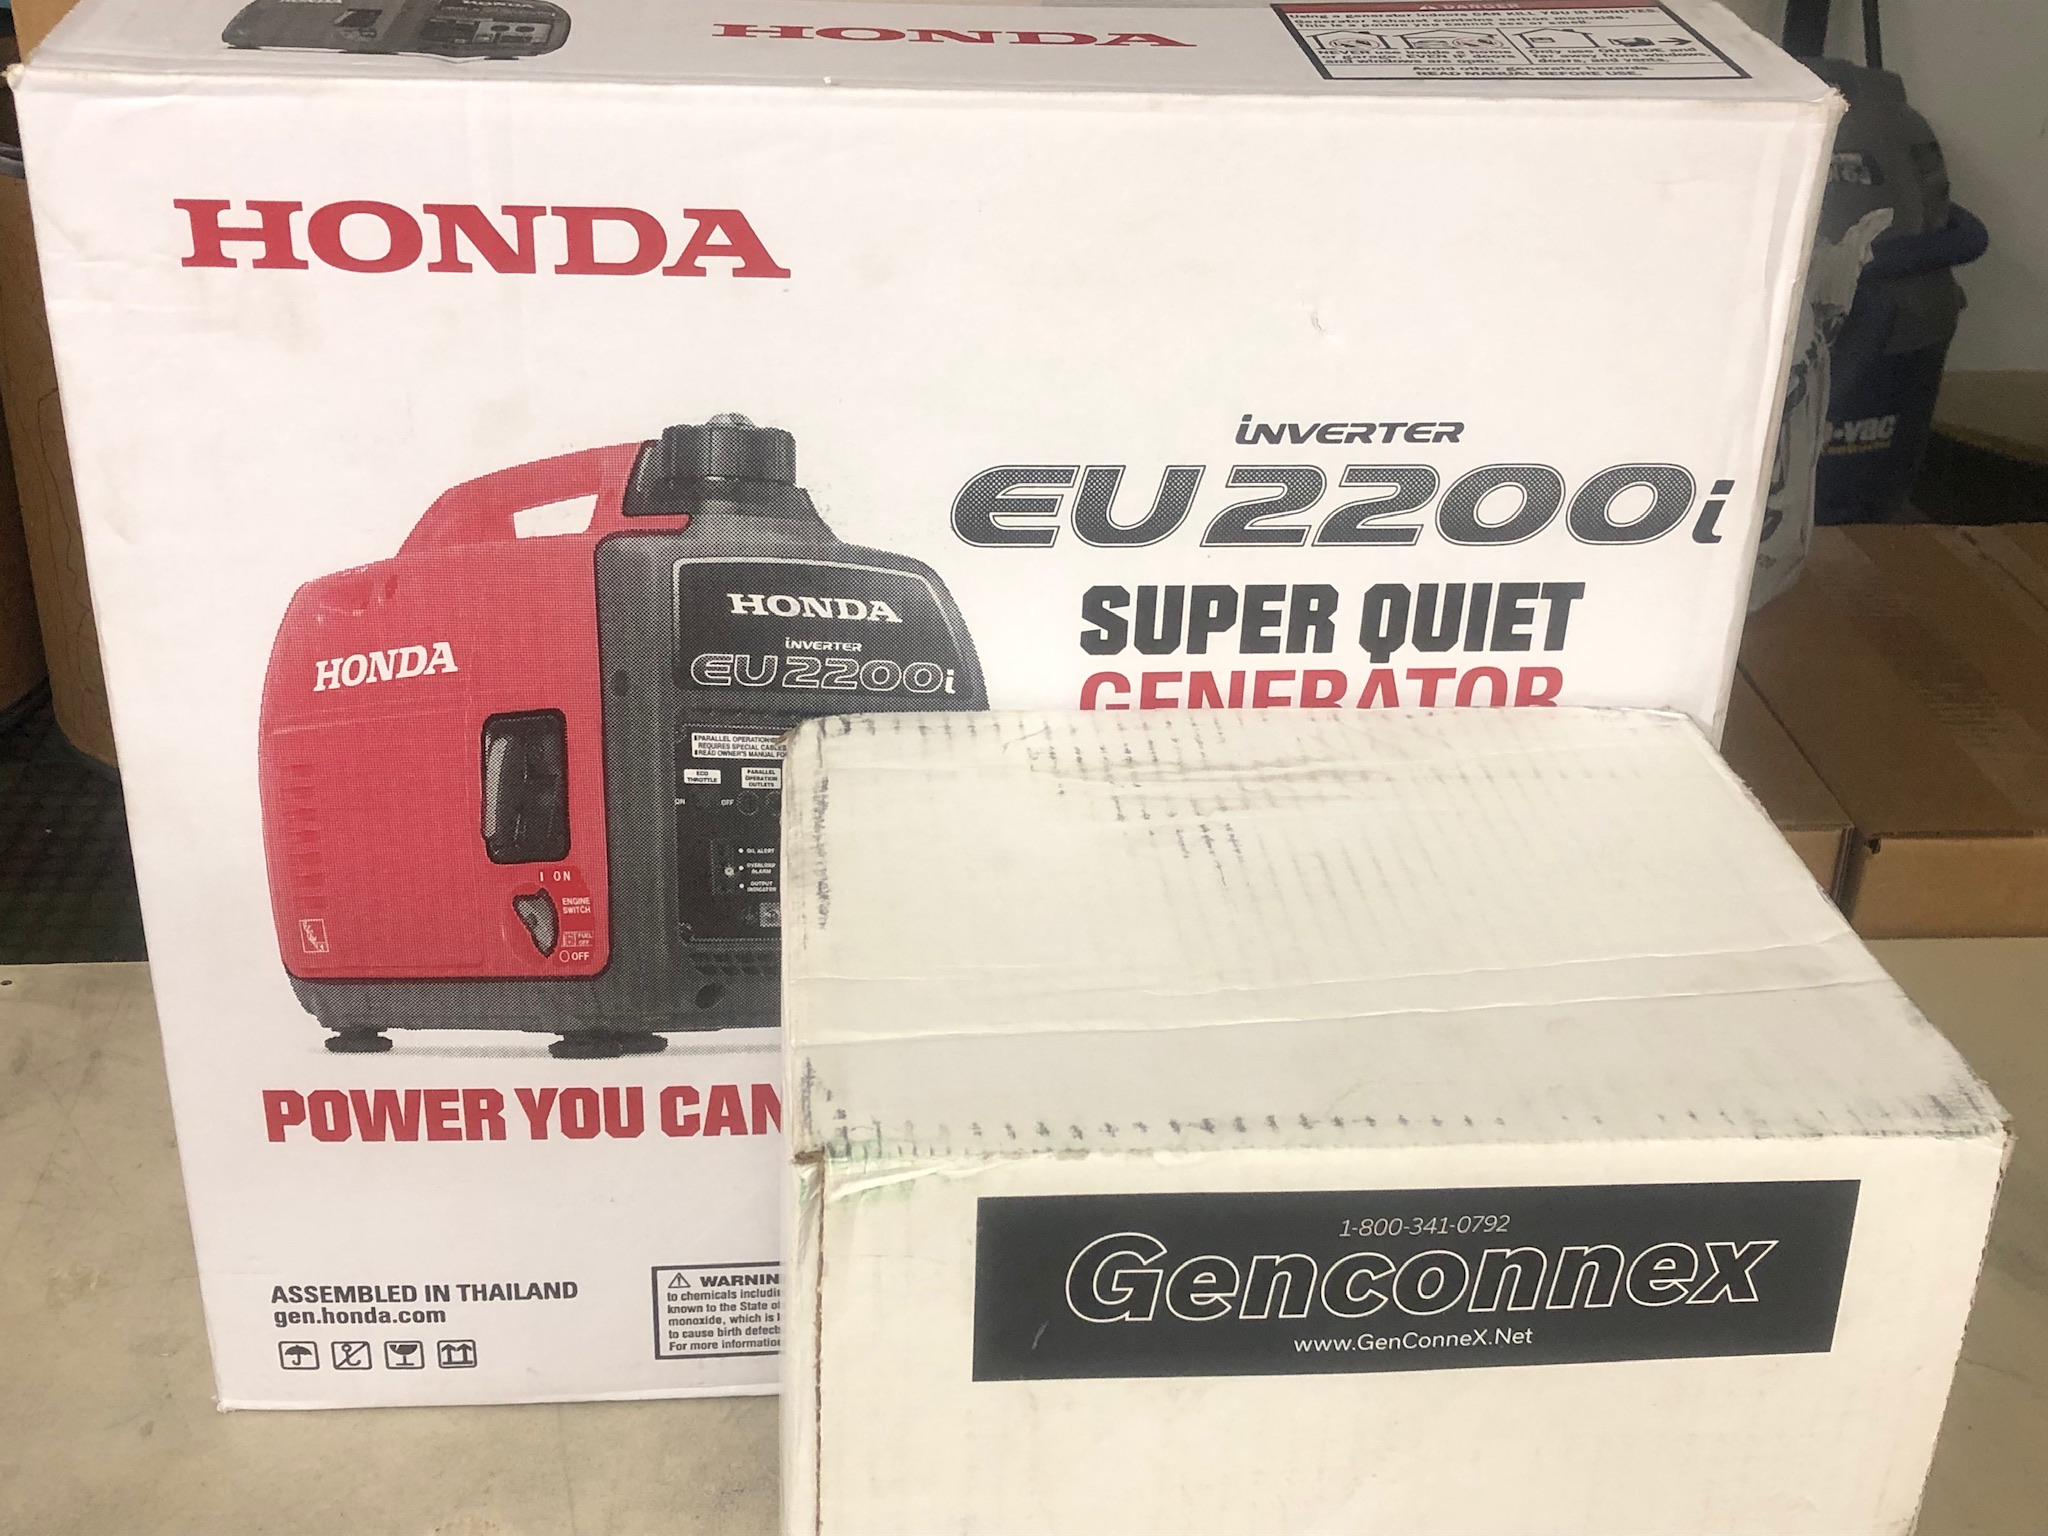 Honda EU2200i and Genconnex Kit in box